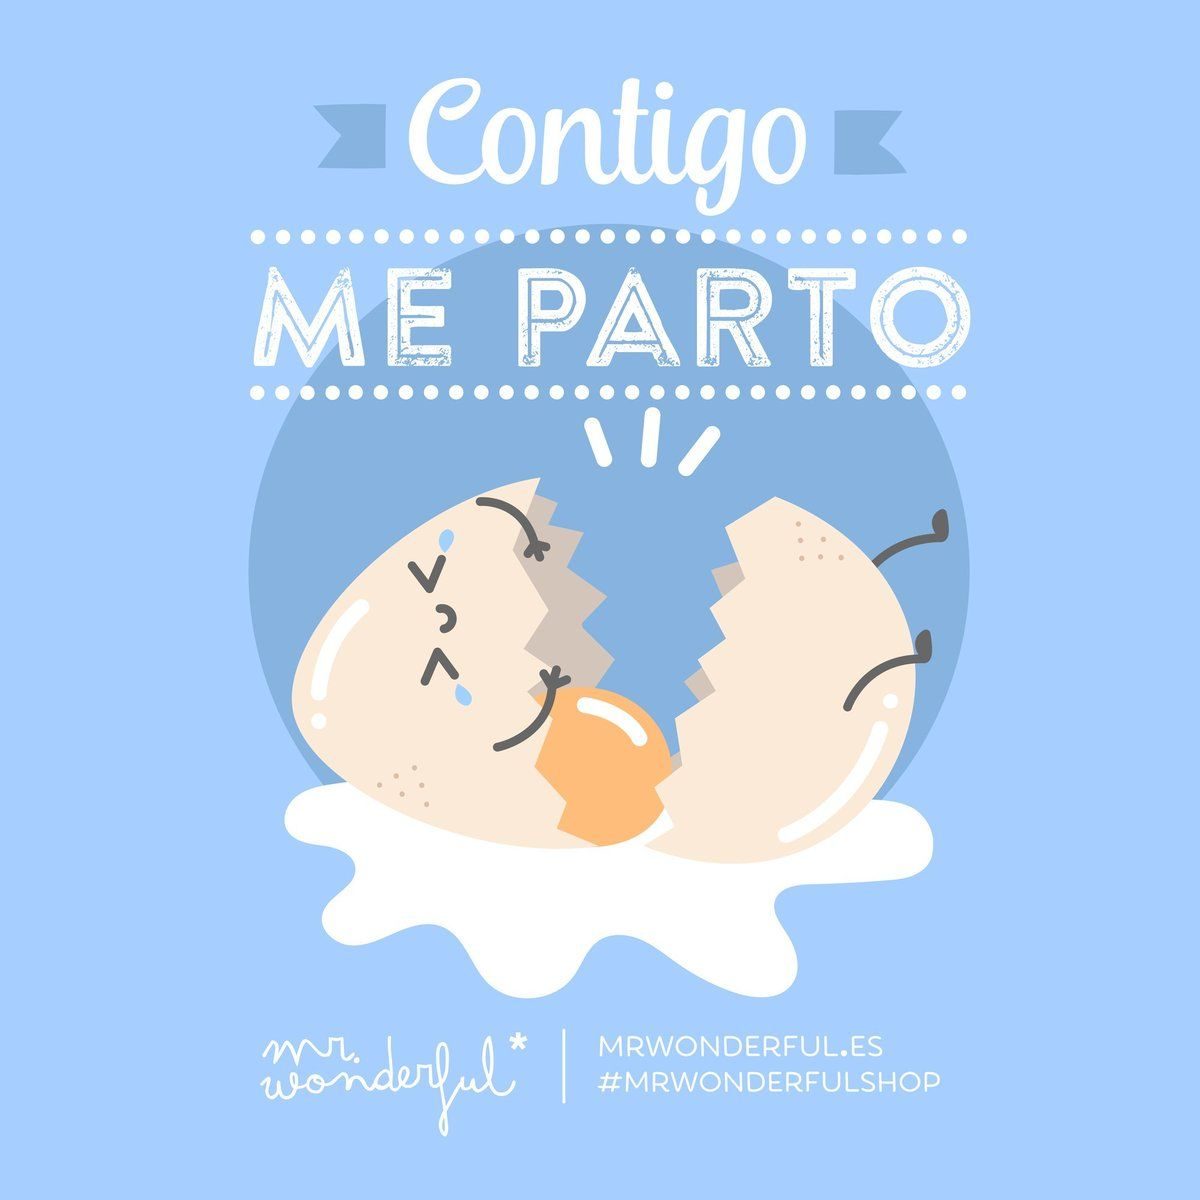 Contigo me parto mr wonderful mr wonderful pinterest for Frases de mister wonderful